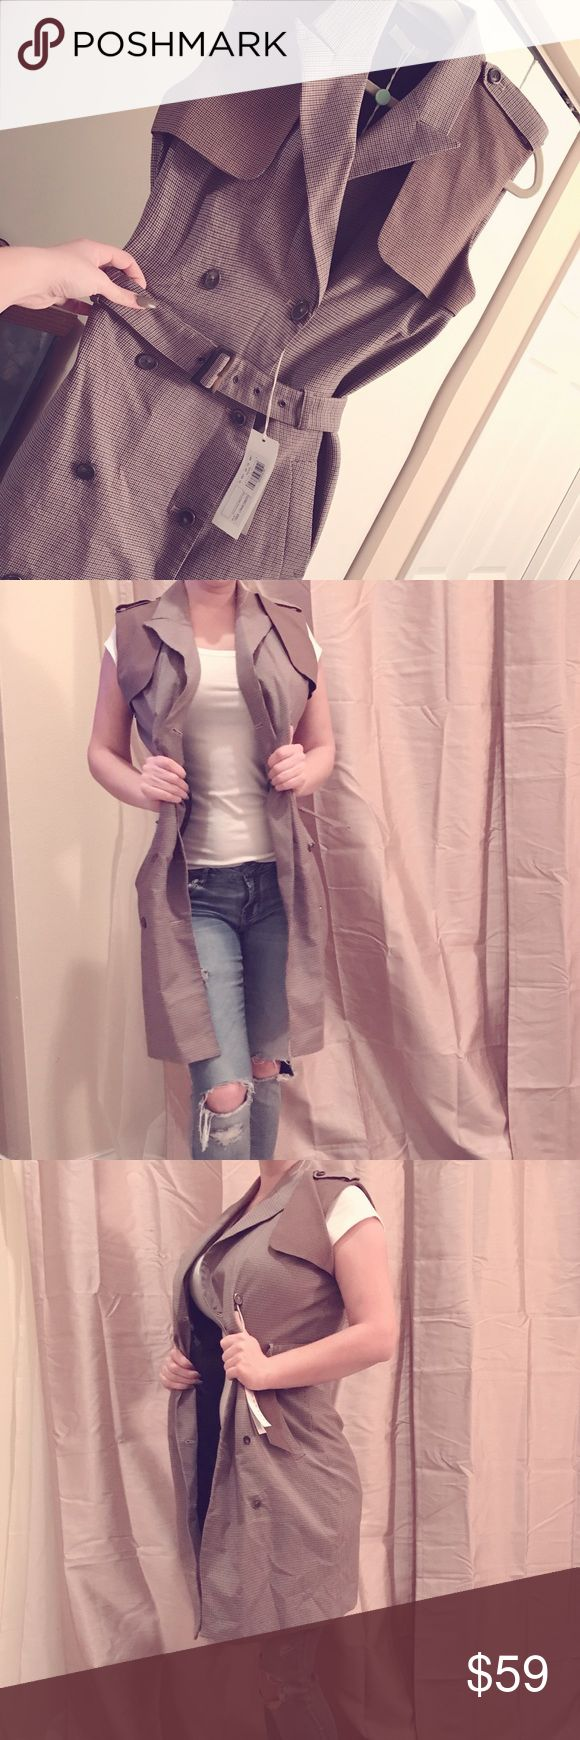 STEFANEL New With Tags! Sleeveless Jacket/Blazer High Quality Blazer/Jacket! Many brown, olive green and tan colors through out! Matching belt tops it off! Beautiful piece for anyone collection! Stefanel Jackets & Coats Trench Coats